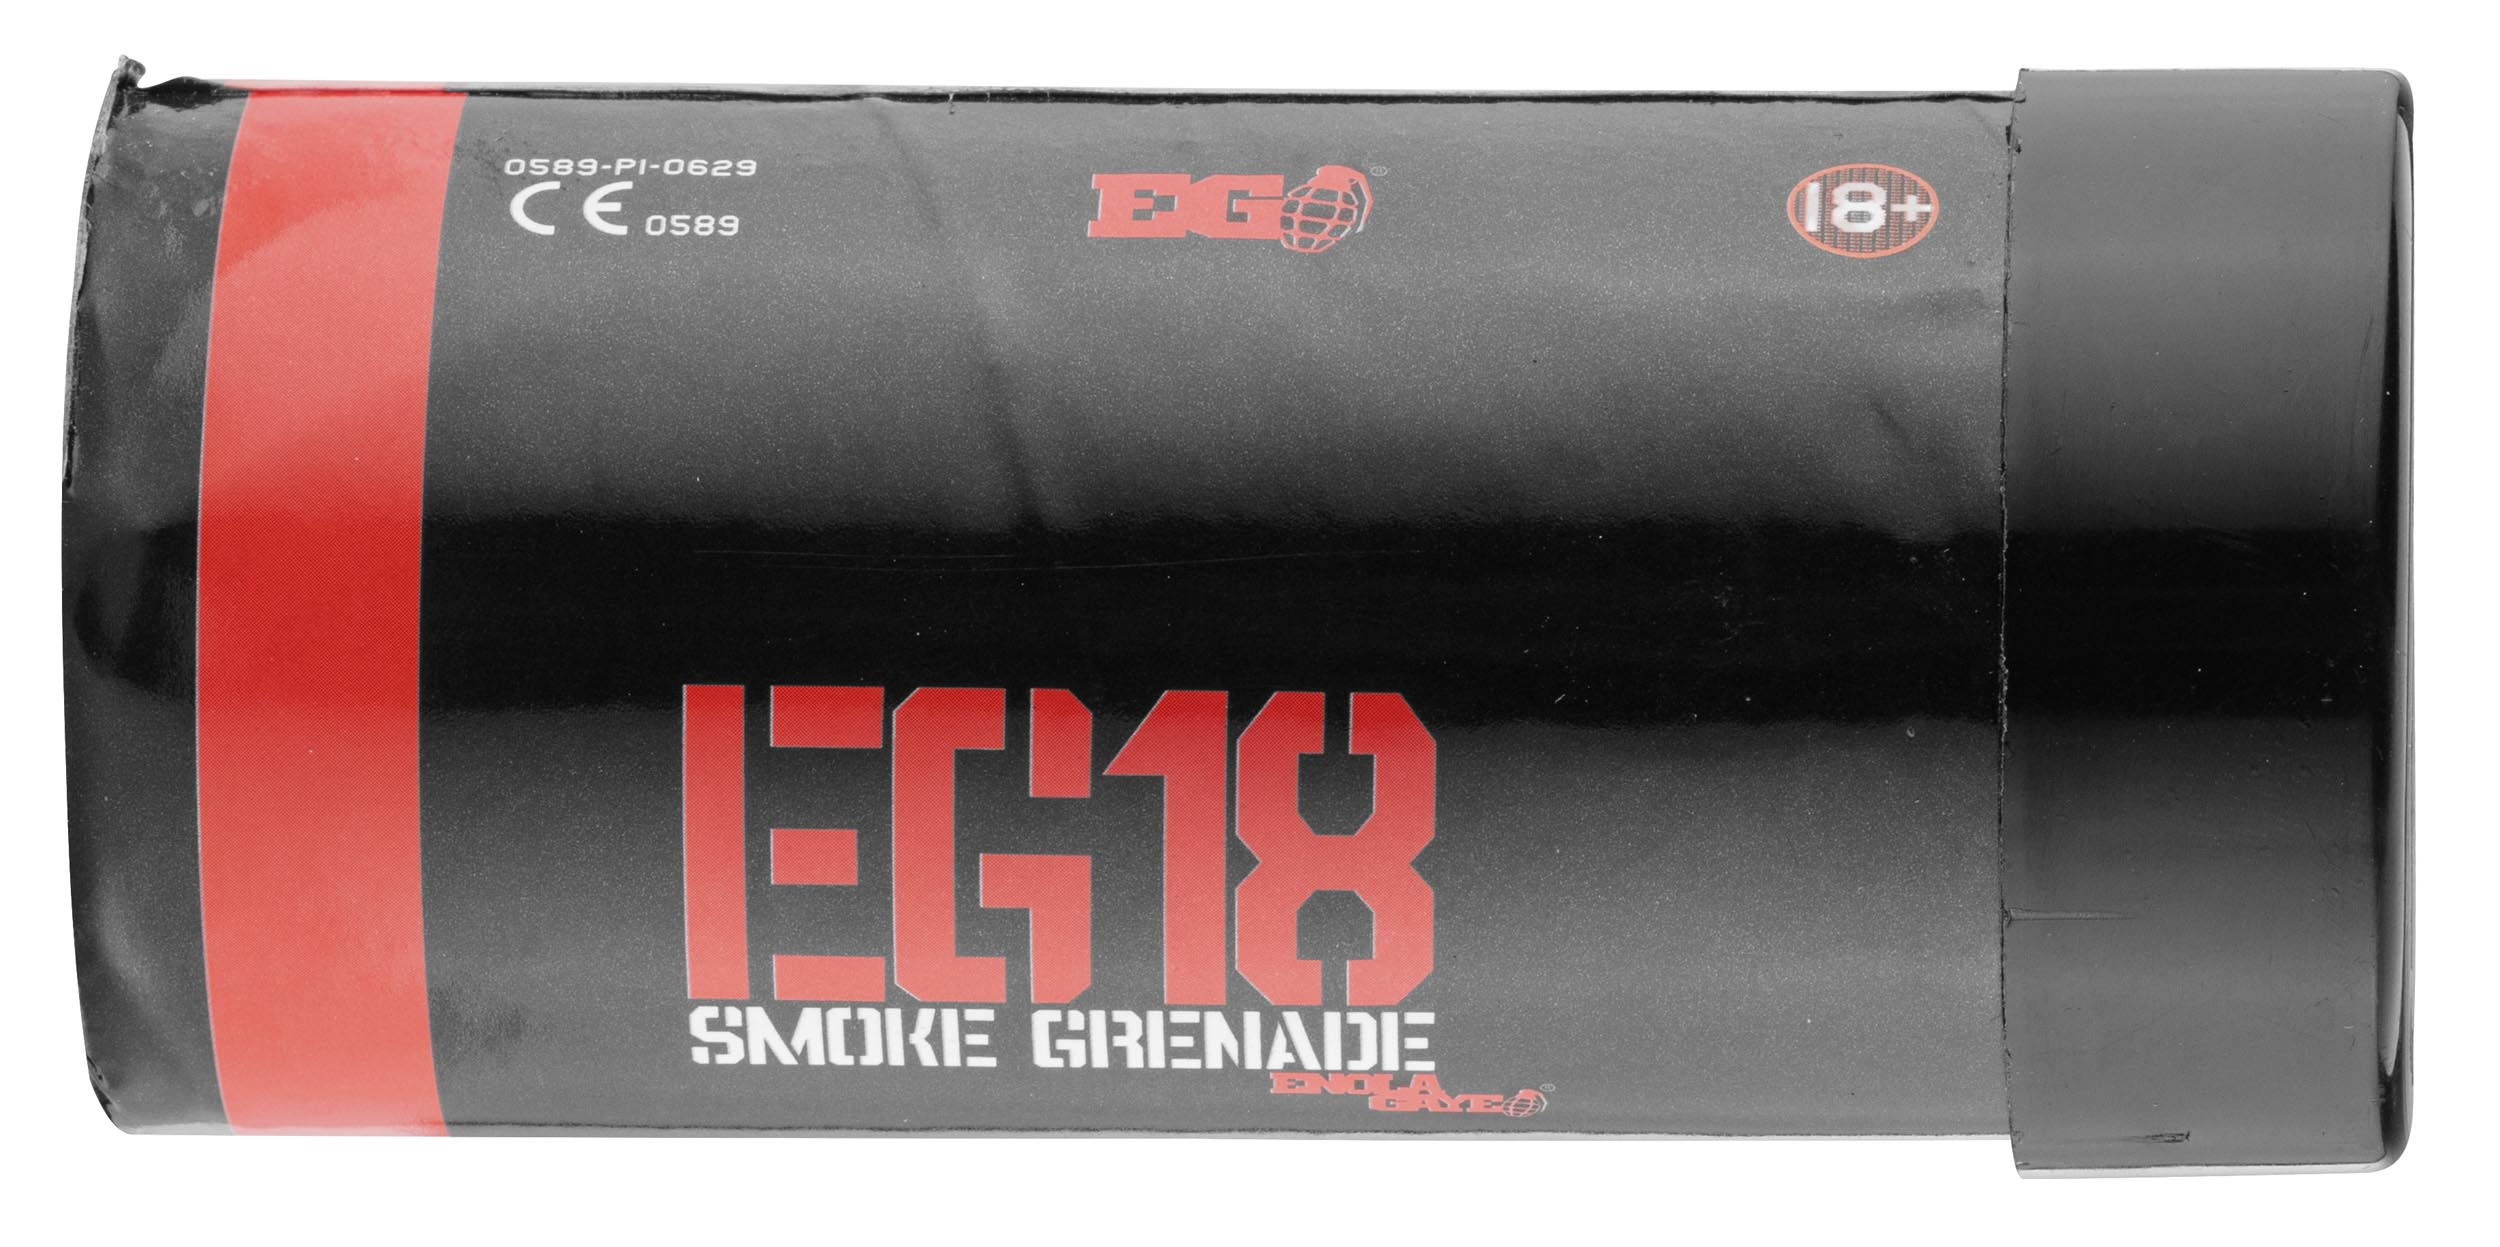 A705315R-3 Fumigène ROUGE eg-18 wire pull assault smoke - Enola gaye - A705315R